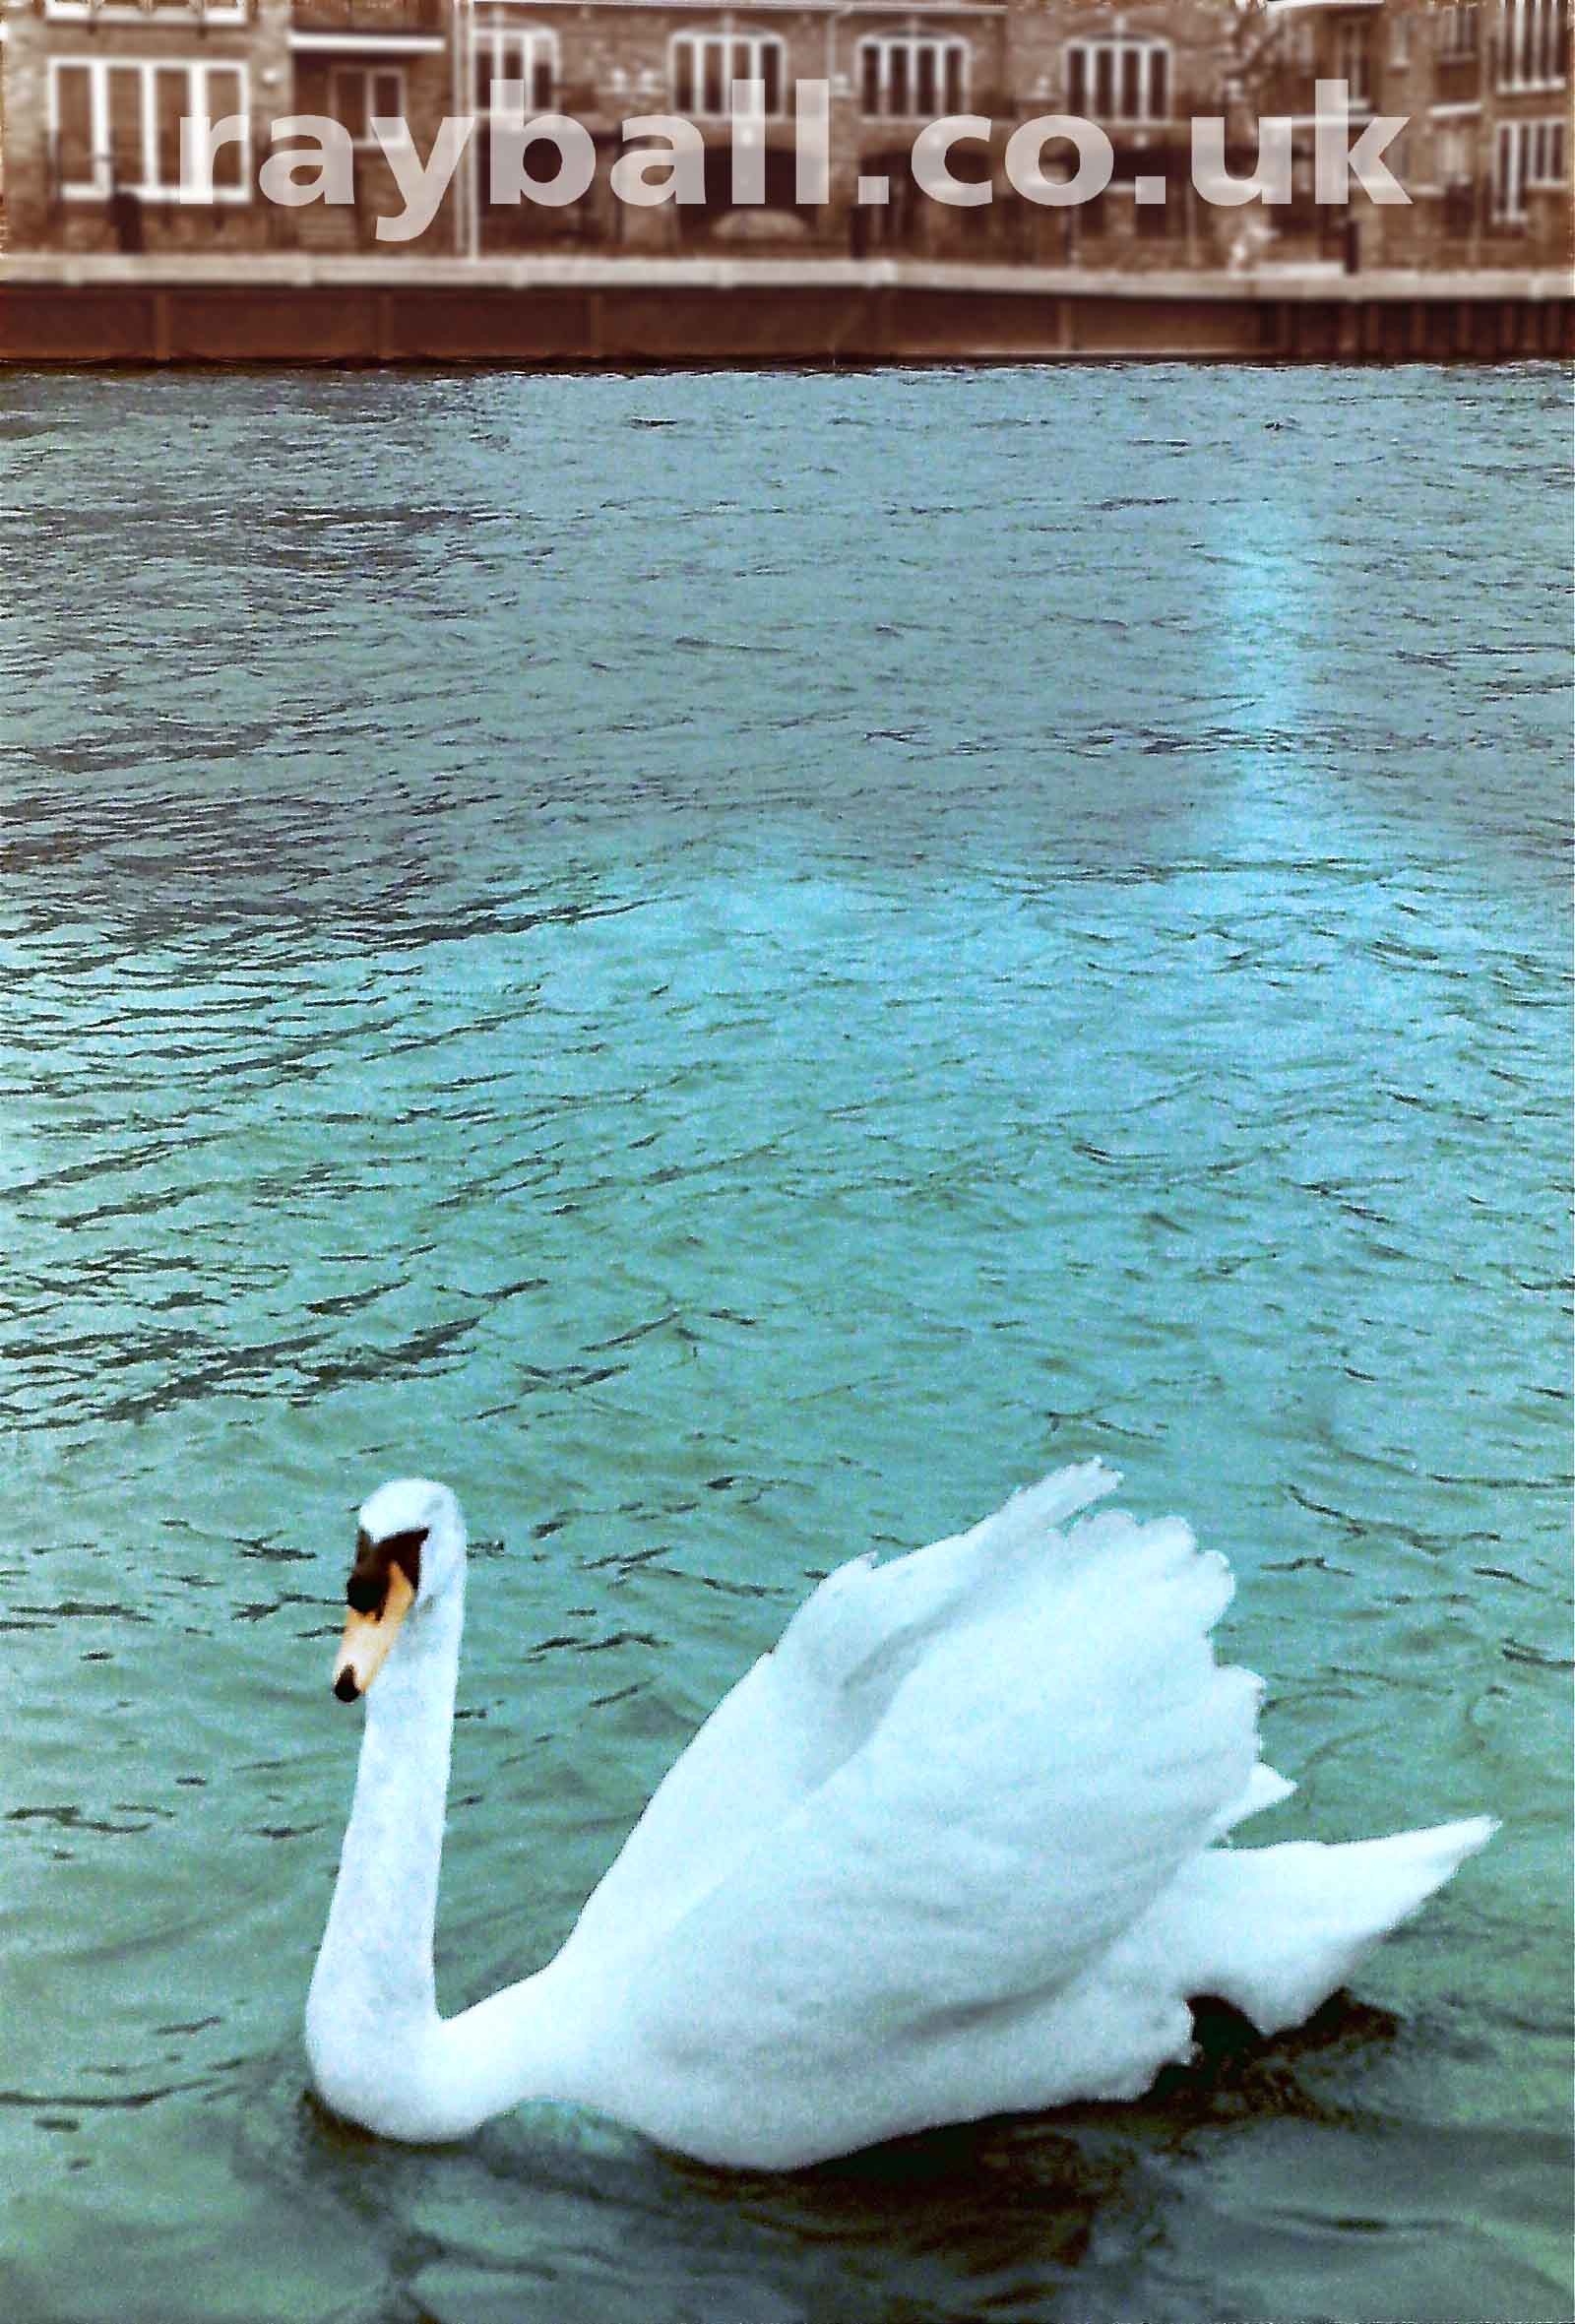 My picture of beautiful swan on the river at Surbiton, Kingston upon Thames.